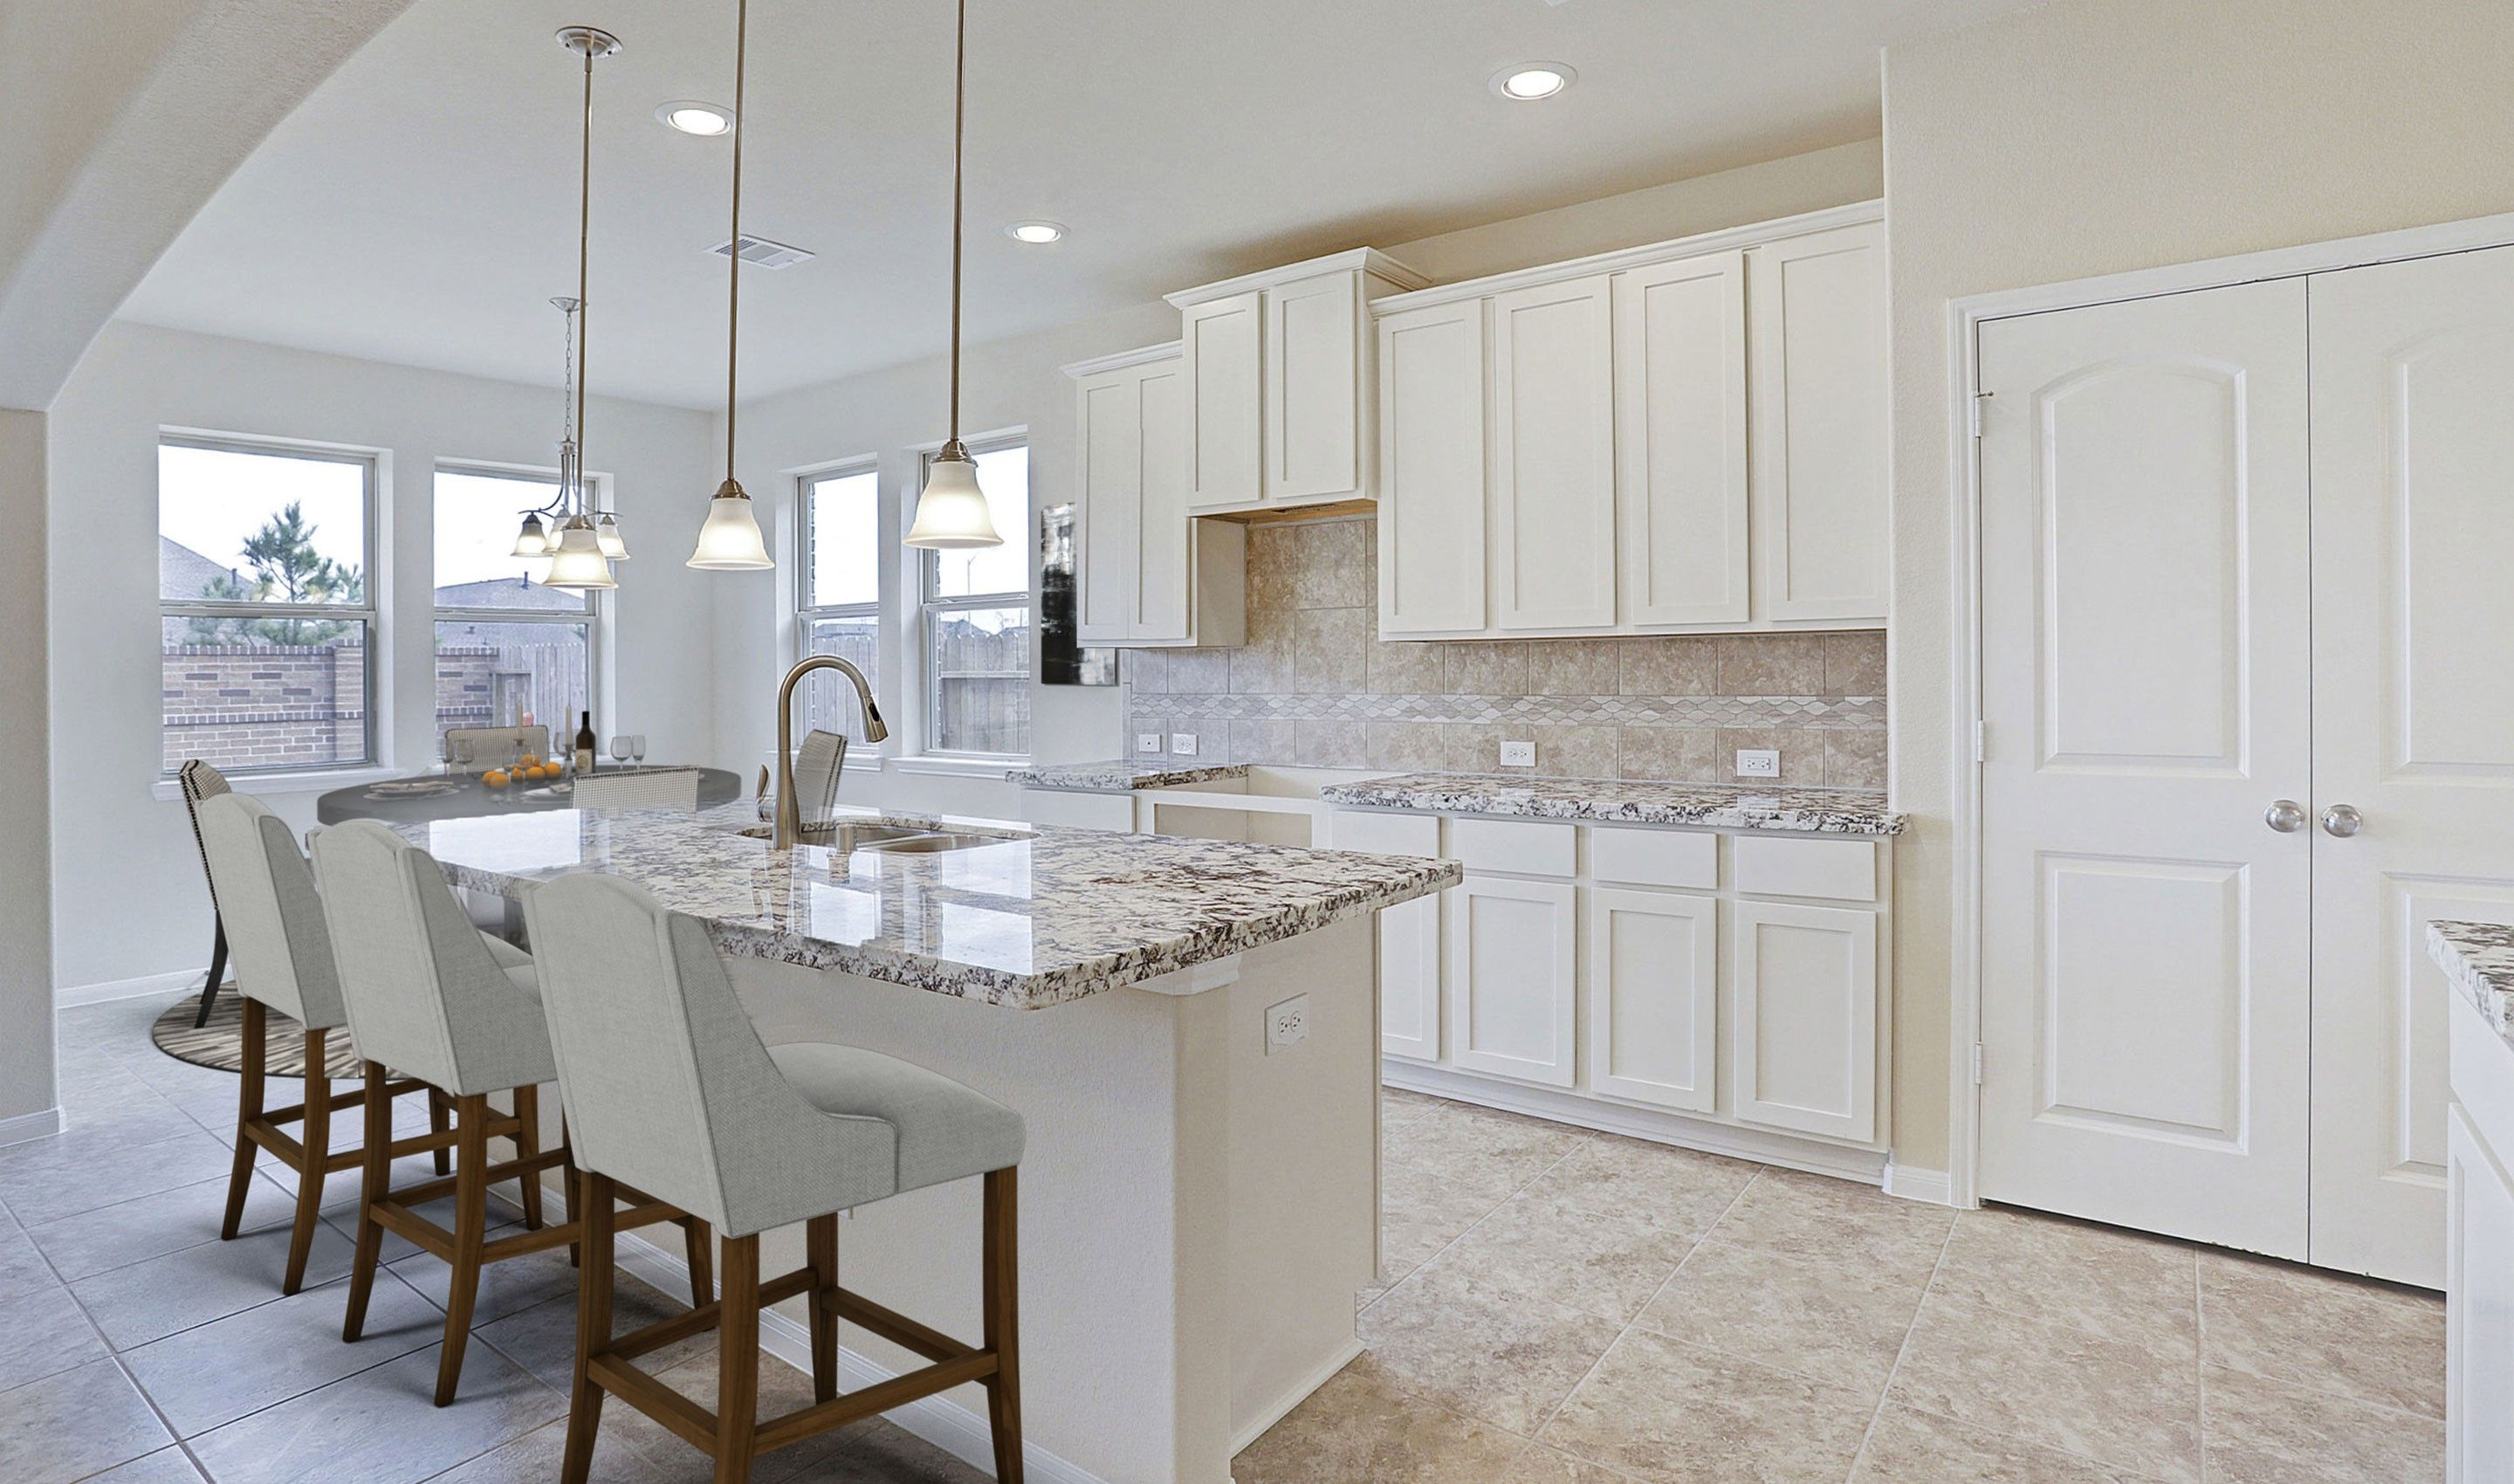 Kitchen featured in the Tuscany II By K. Hovnanian® Homes in Houston, TX